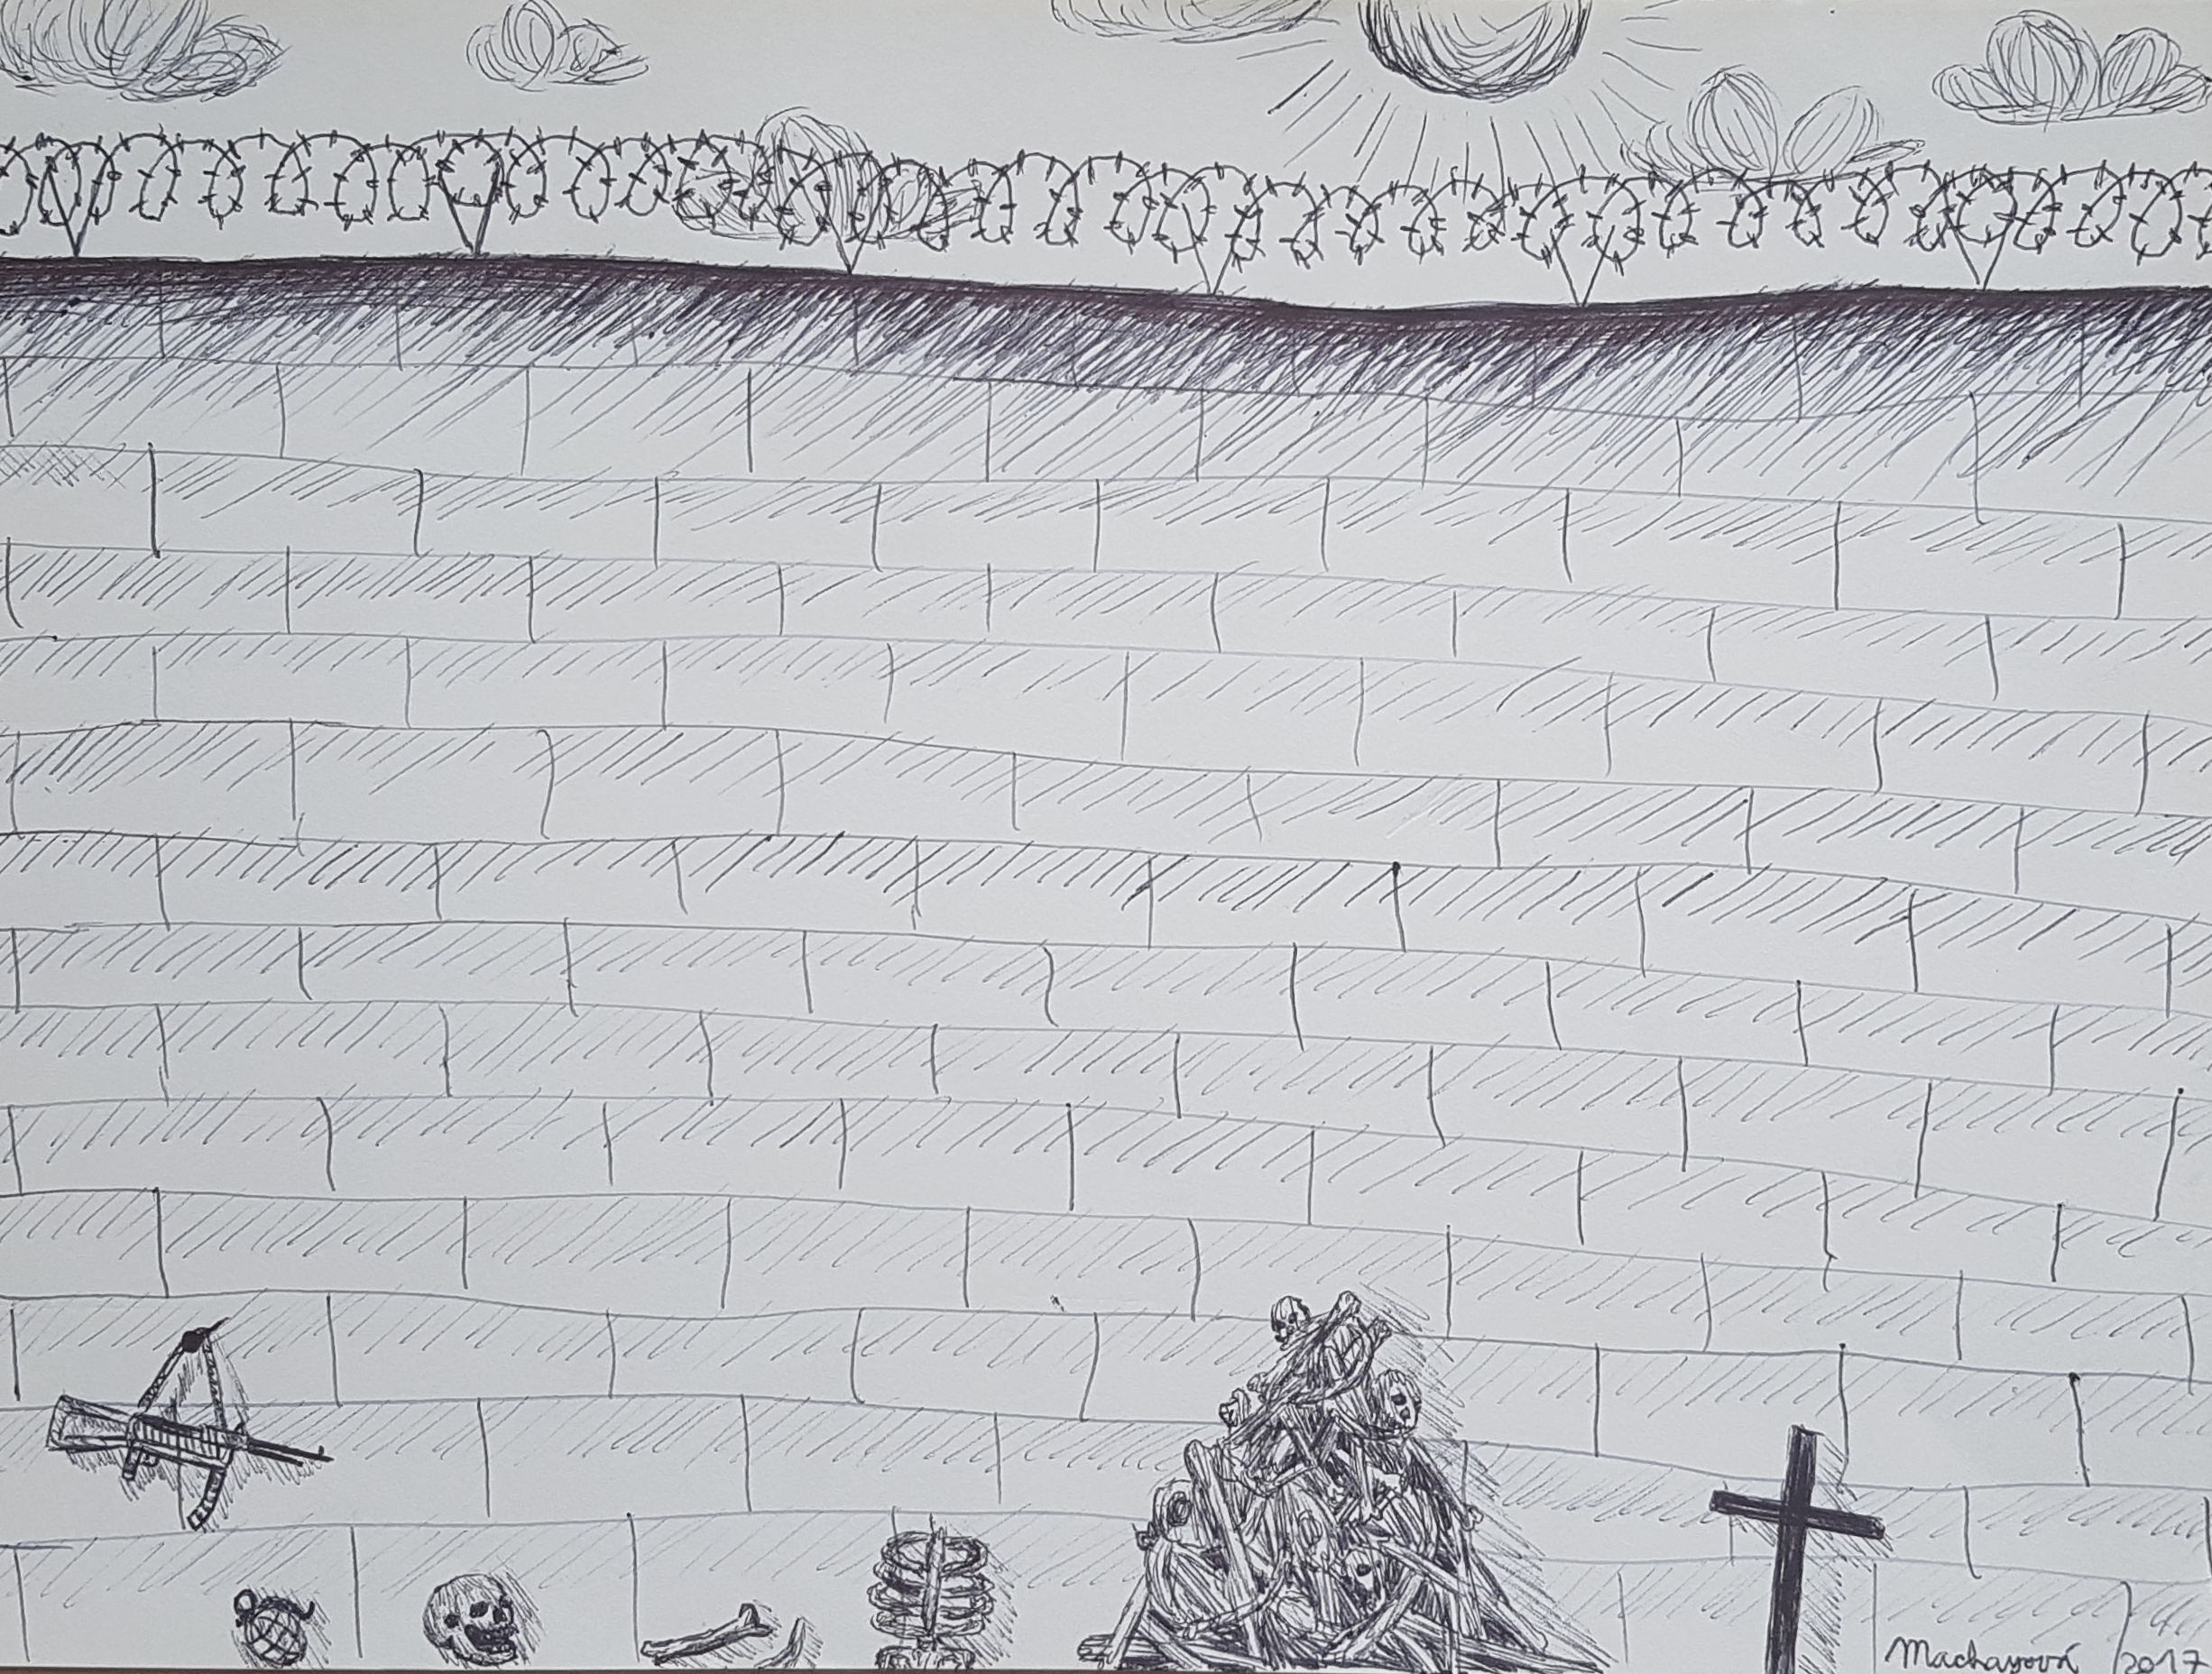 Just a quick art class sketch called 'The Wall'